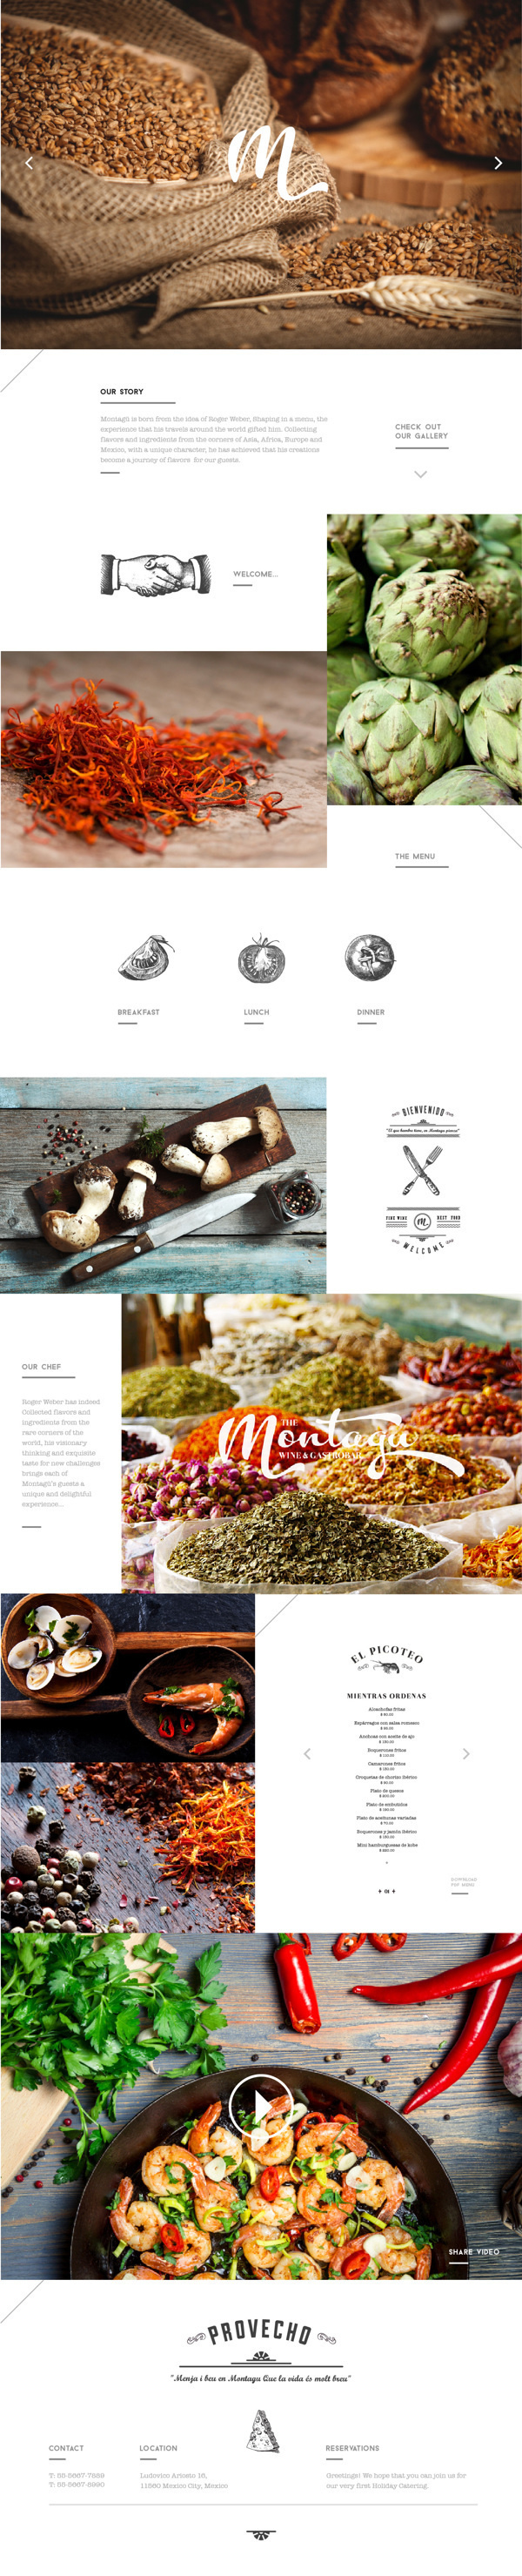 Montagxc3xbc on Behance #site #mexico #web #restaurant